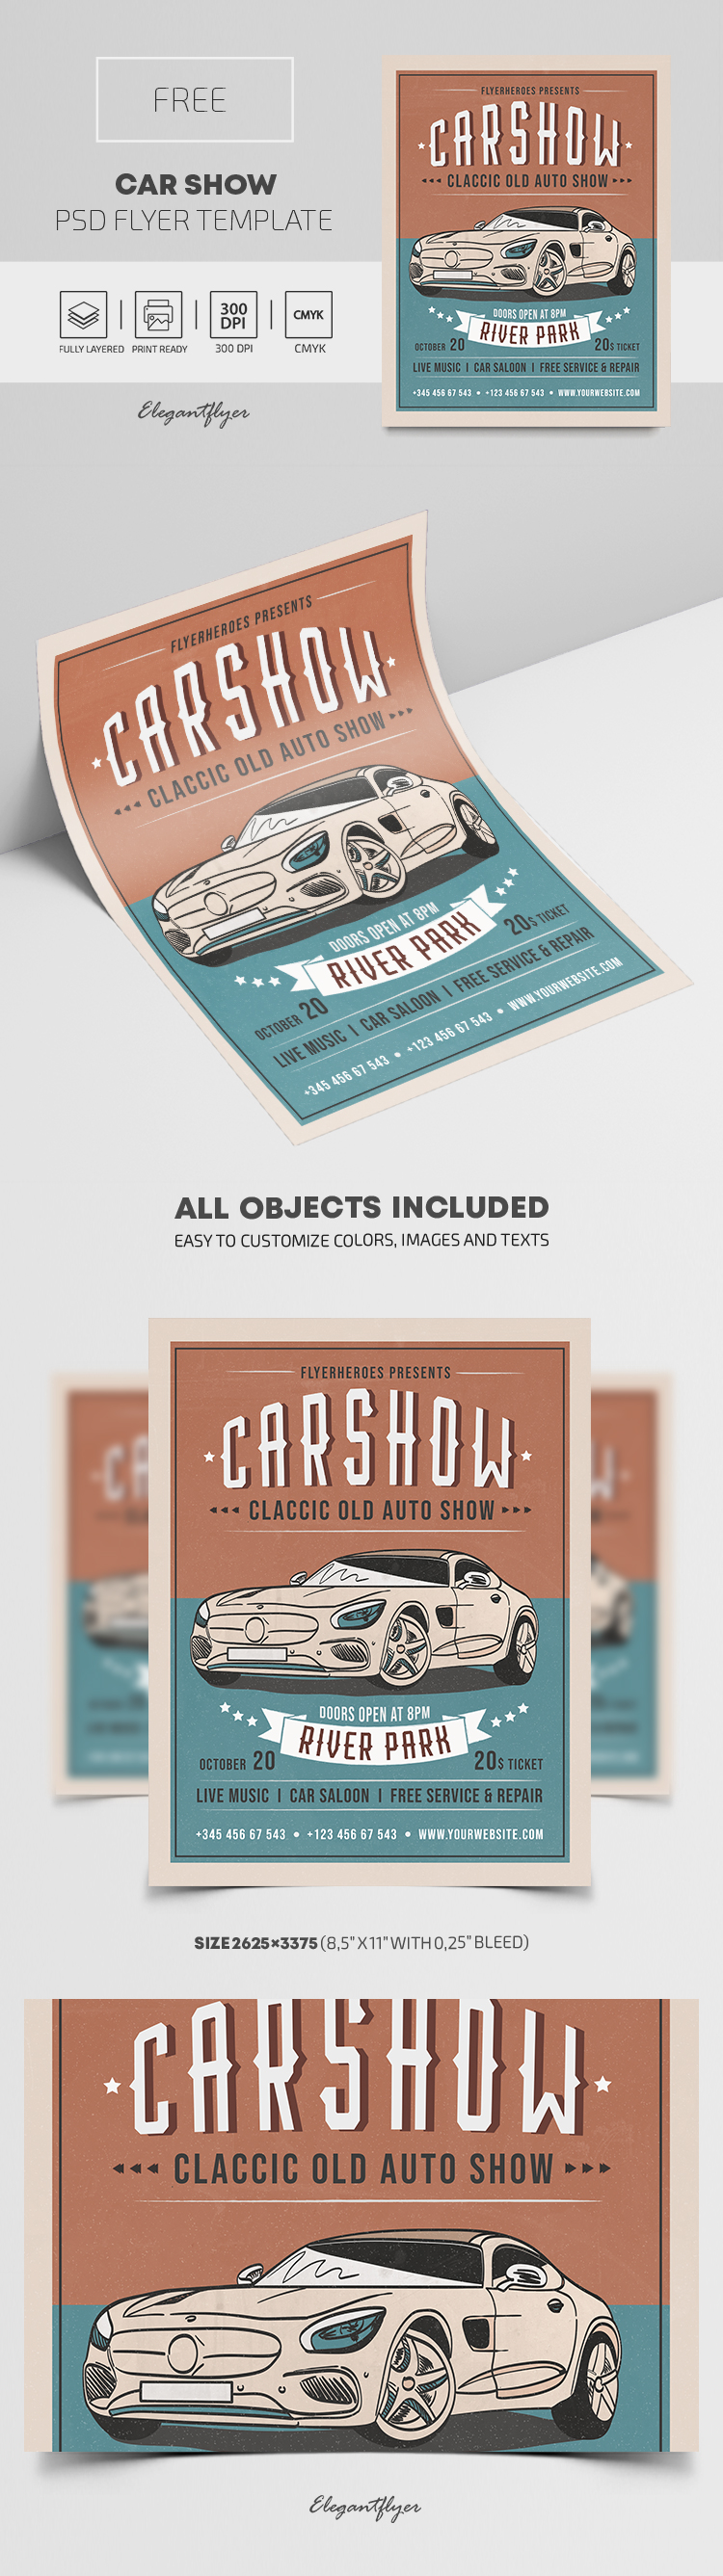 Car Show – Free PSD Flyer Template